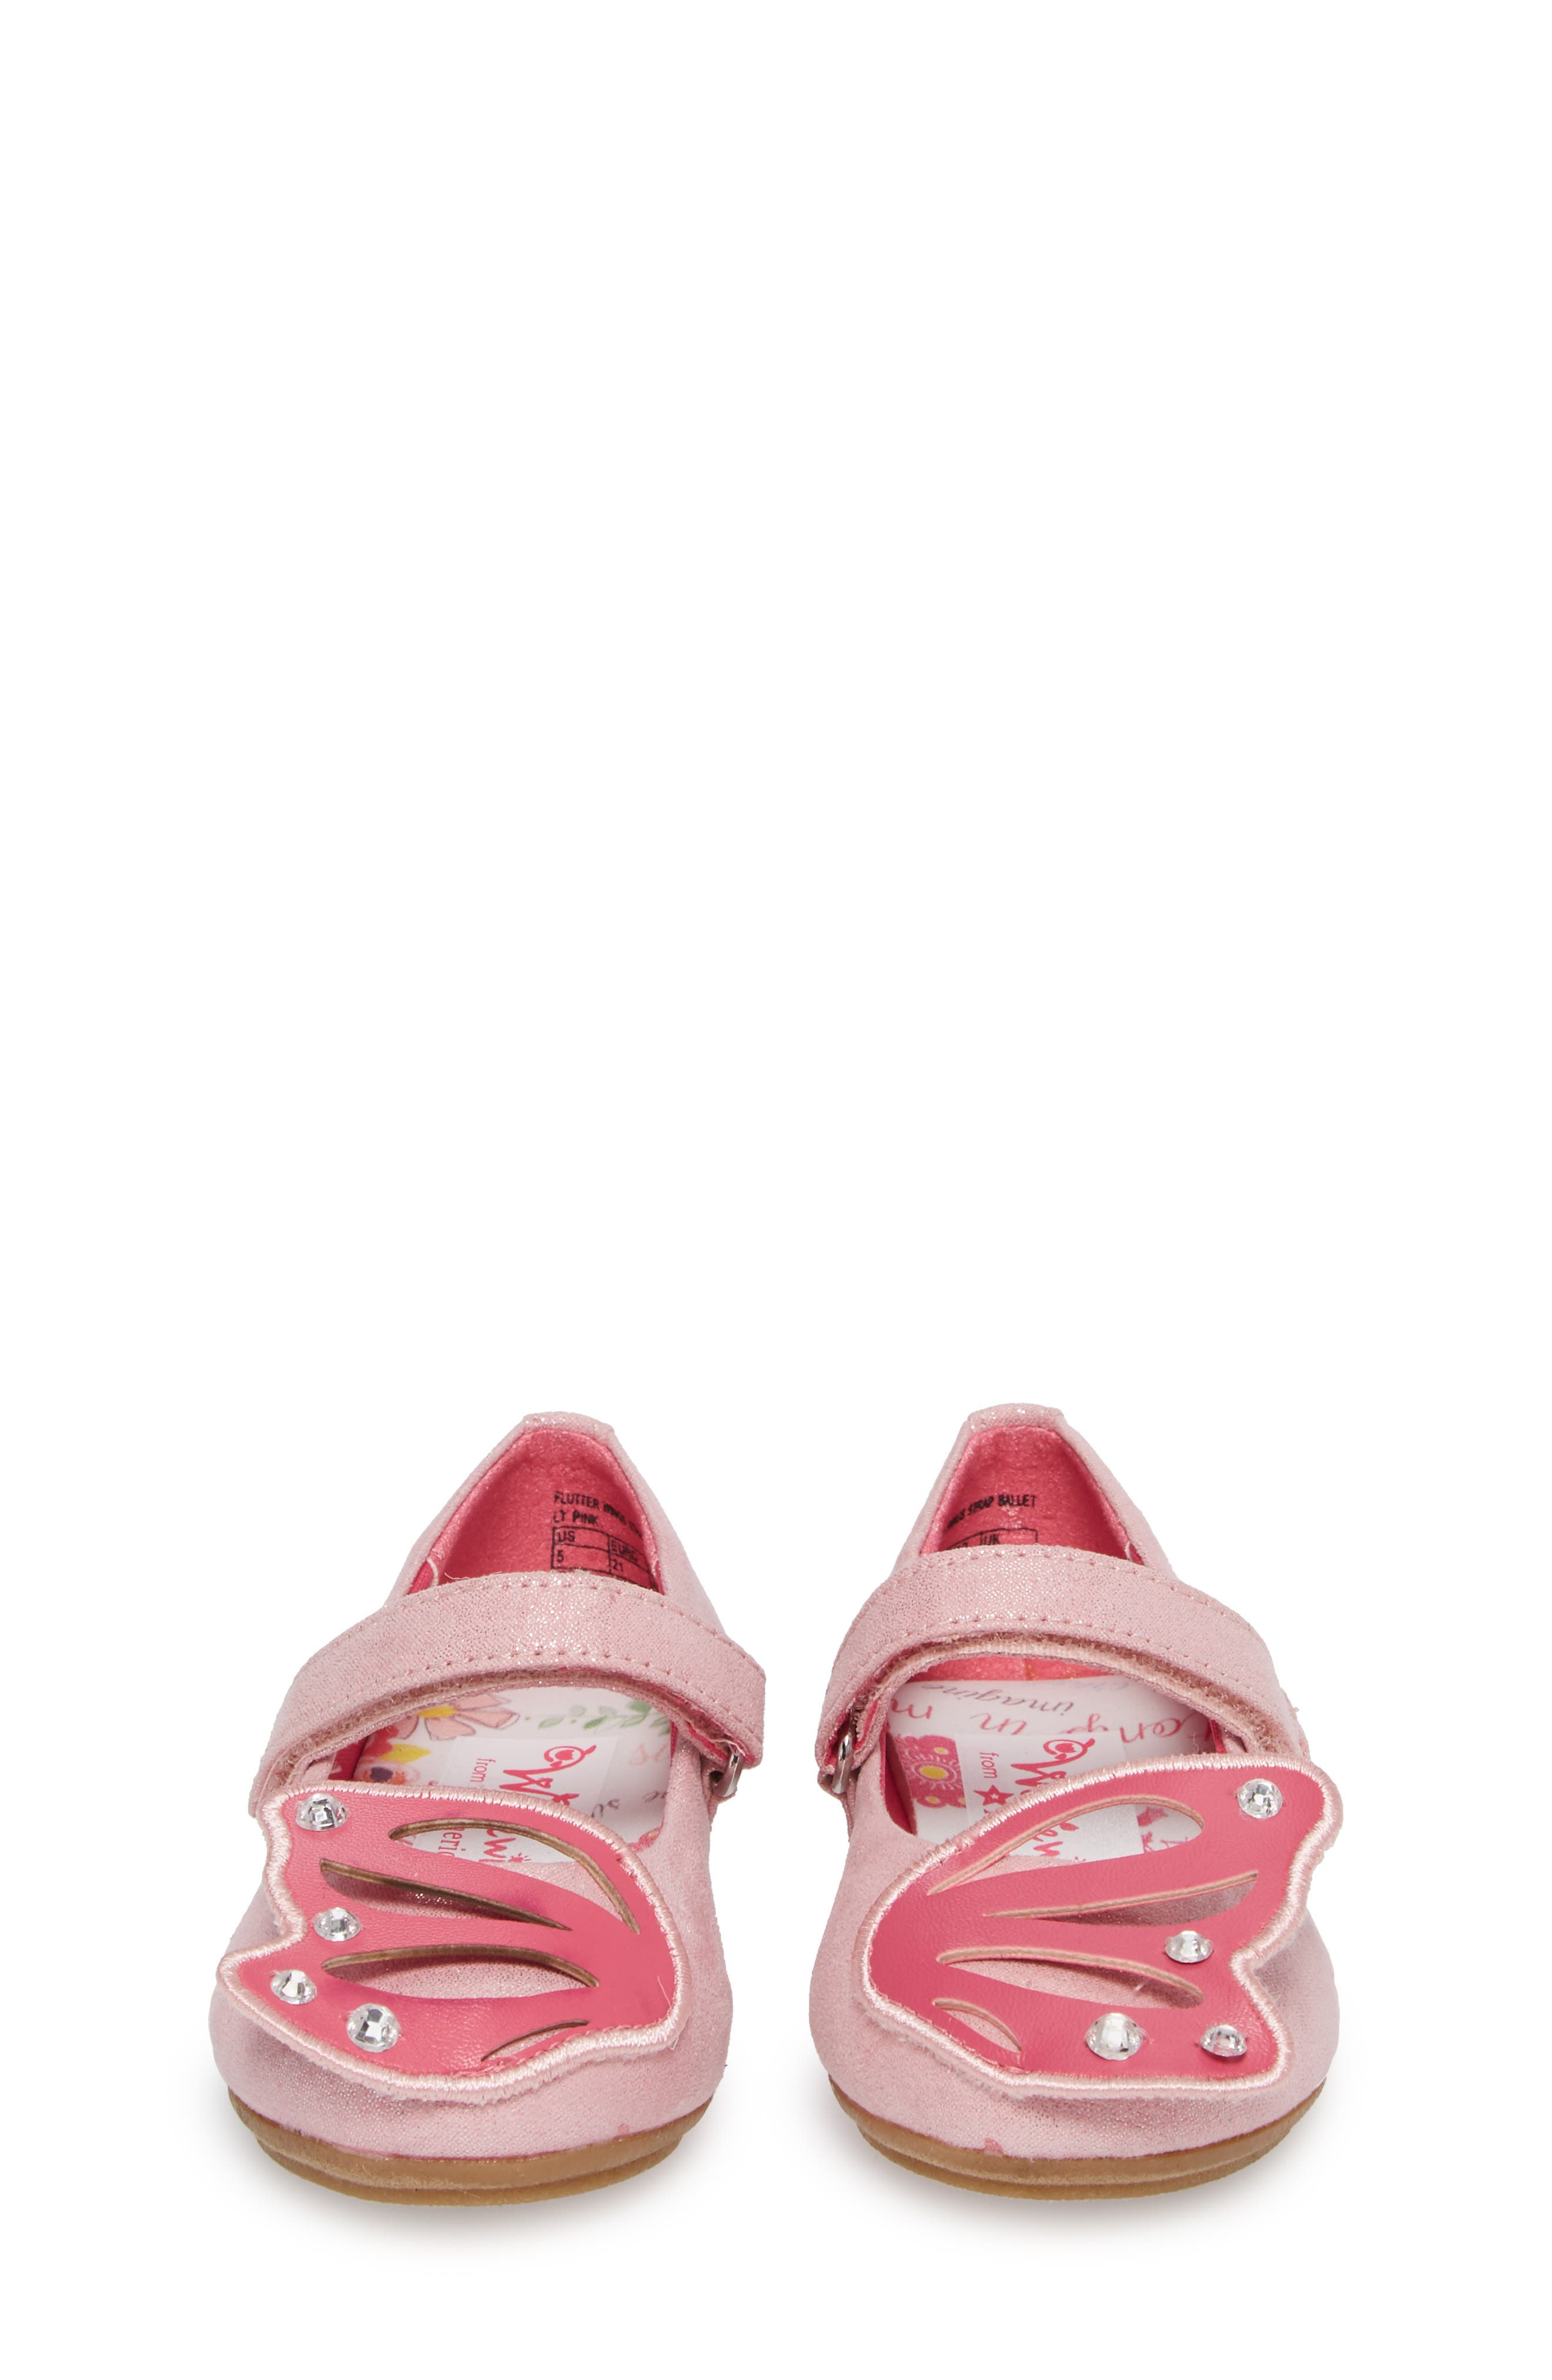 WELLIEWISHERS FROM AMERICAN GIRL,                             Flutter Wings Embellished Ballet Flat,                             Alternate thumbnail 4, color,                             650